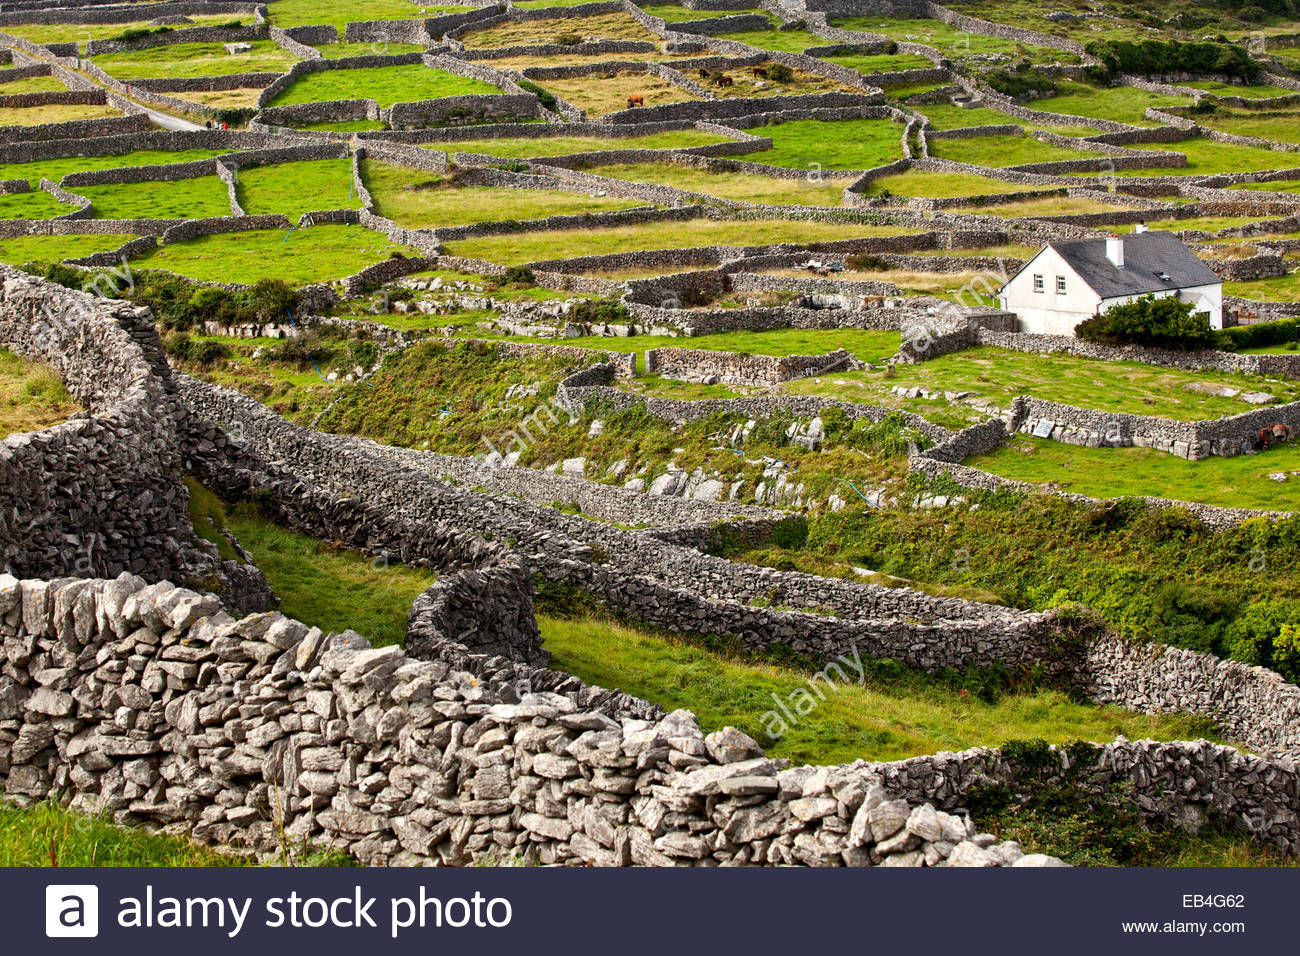 Stonewall architecture around the Aran Islands. - Stock Image